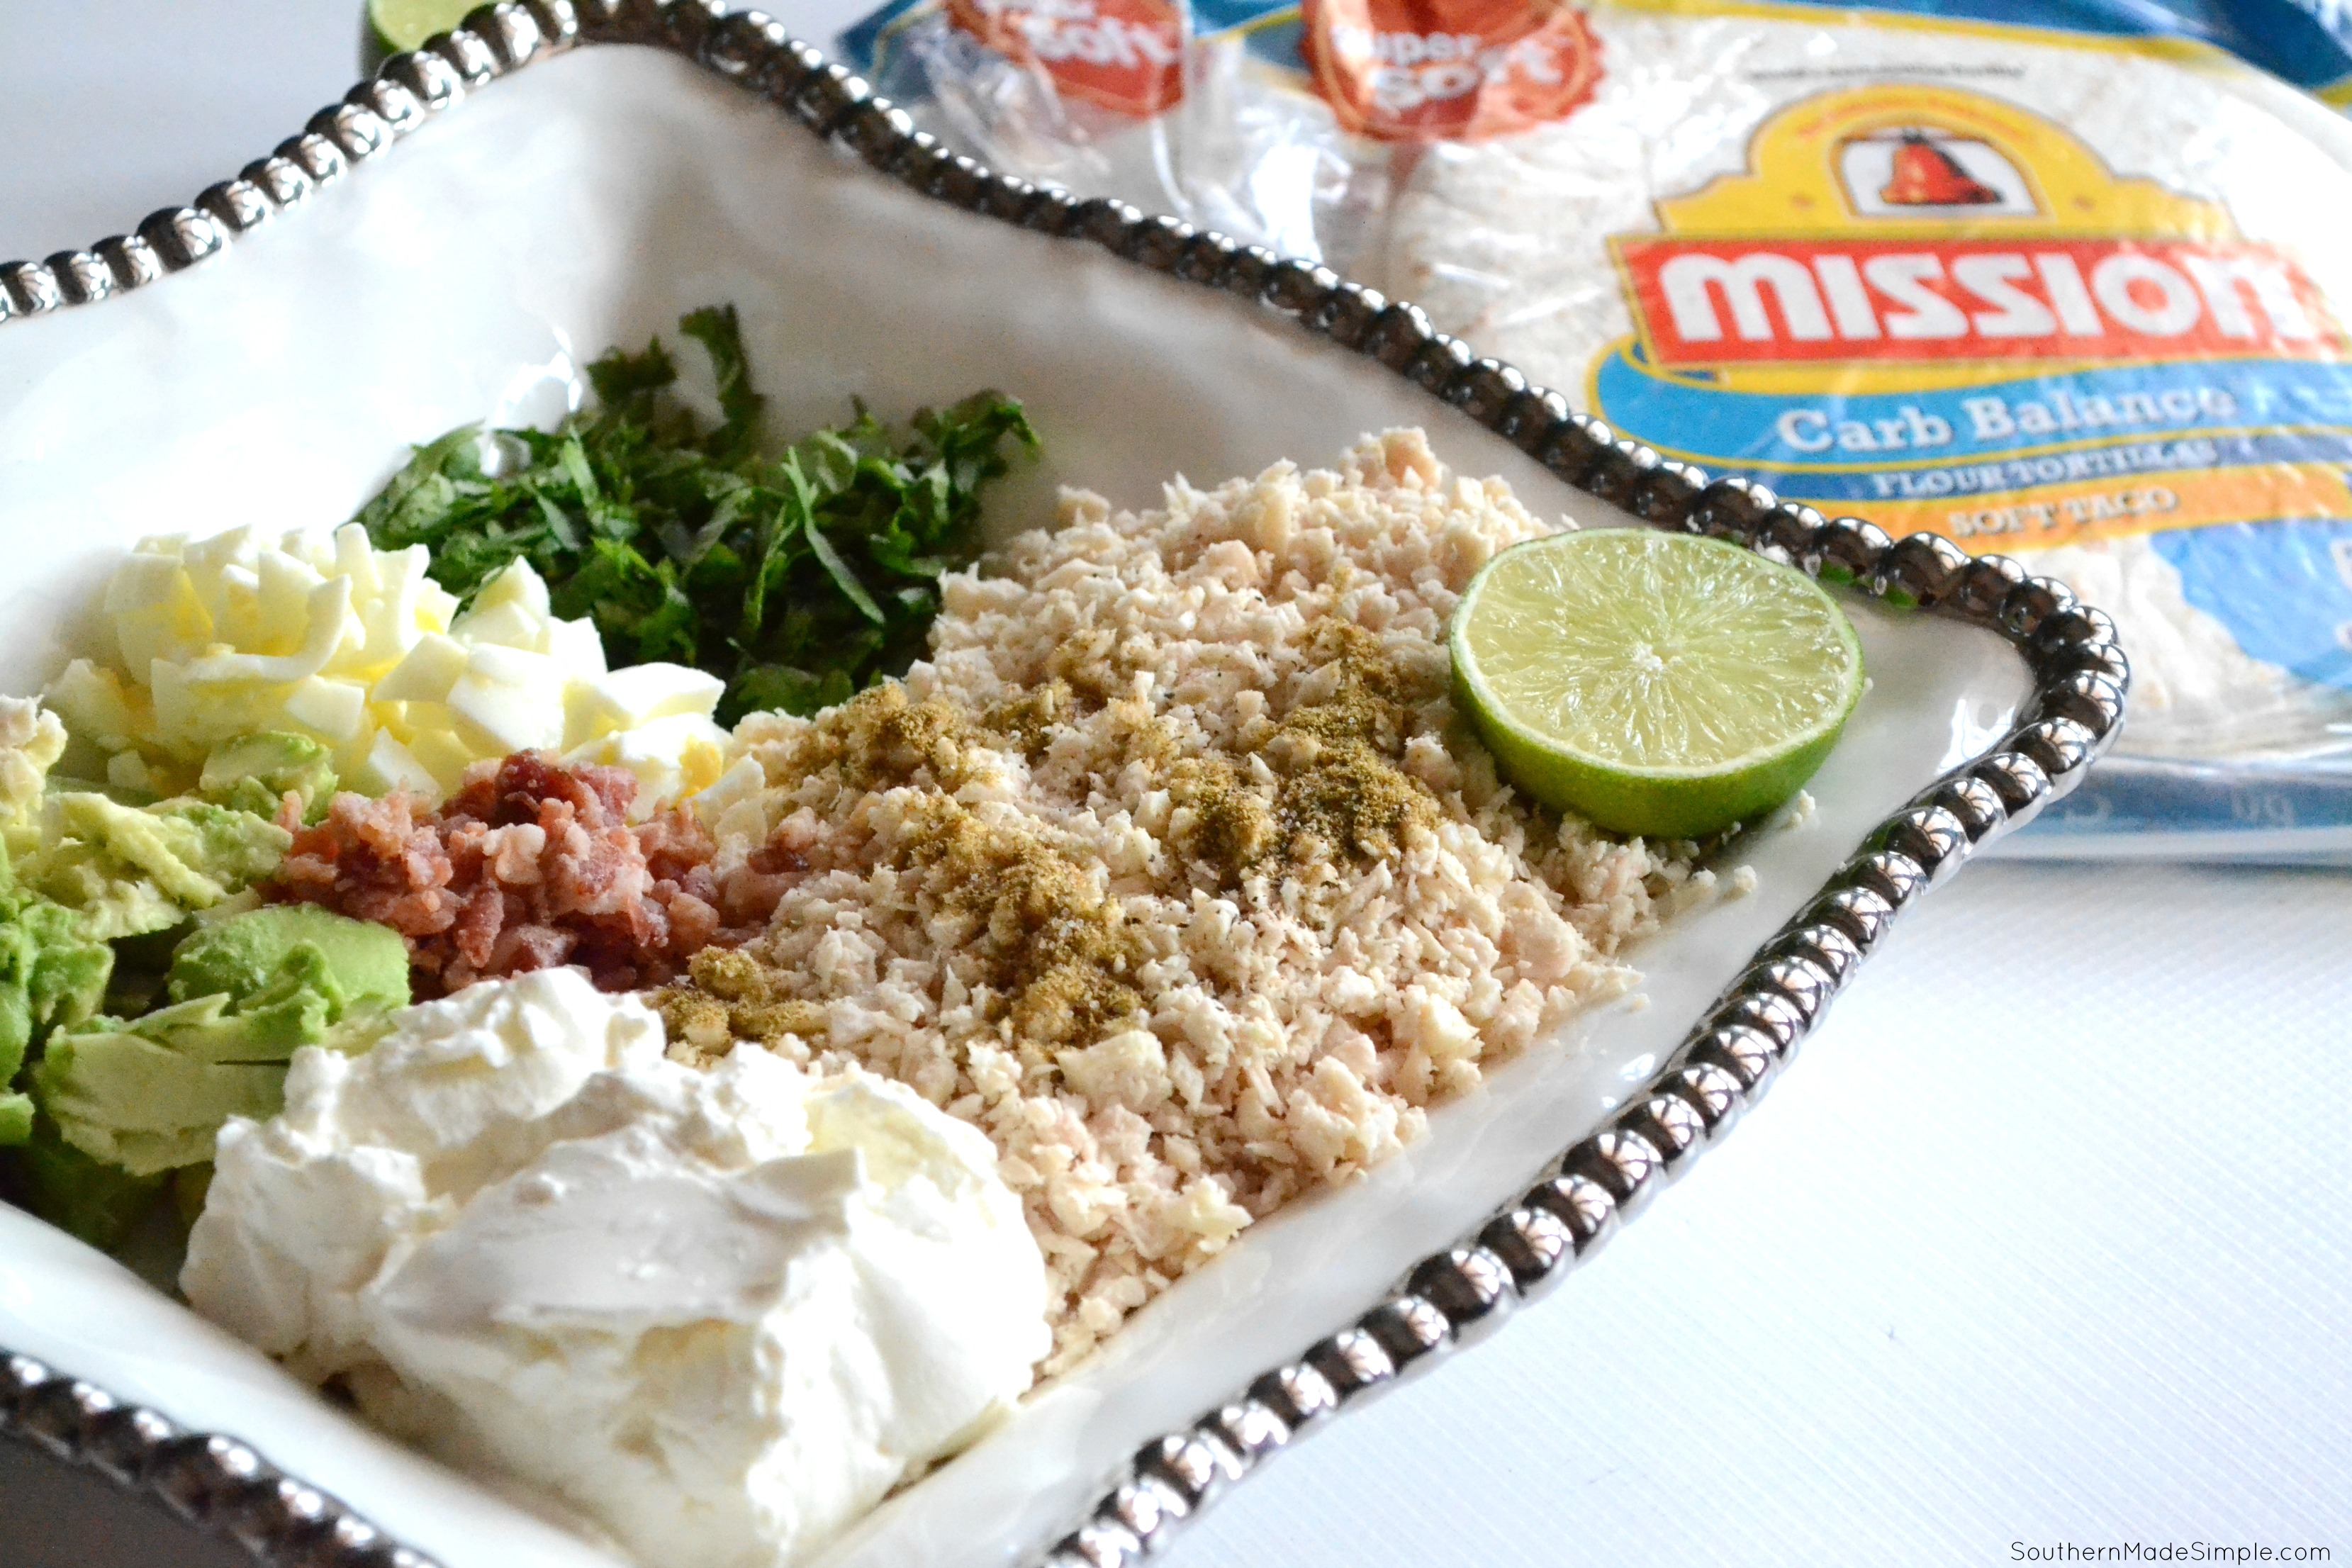 Keep your new year's resolutions in check with these low carb Creamy Avocado Chicken Salad Wraps made with Mission Carb Balance Soft Flour Tortillas! #ad #MissionToChange #Sweepstakes